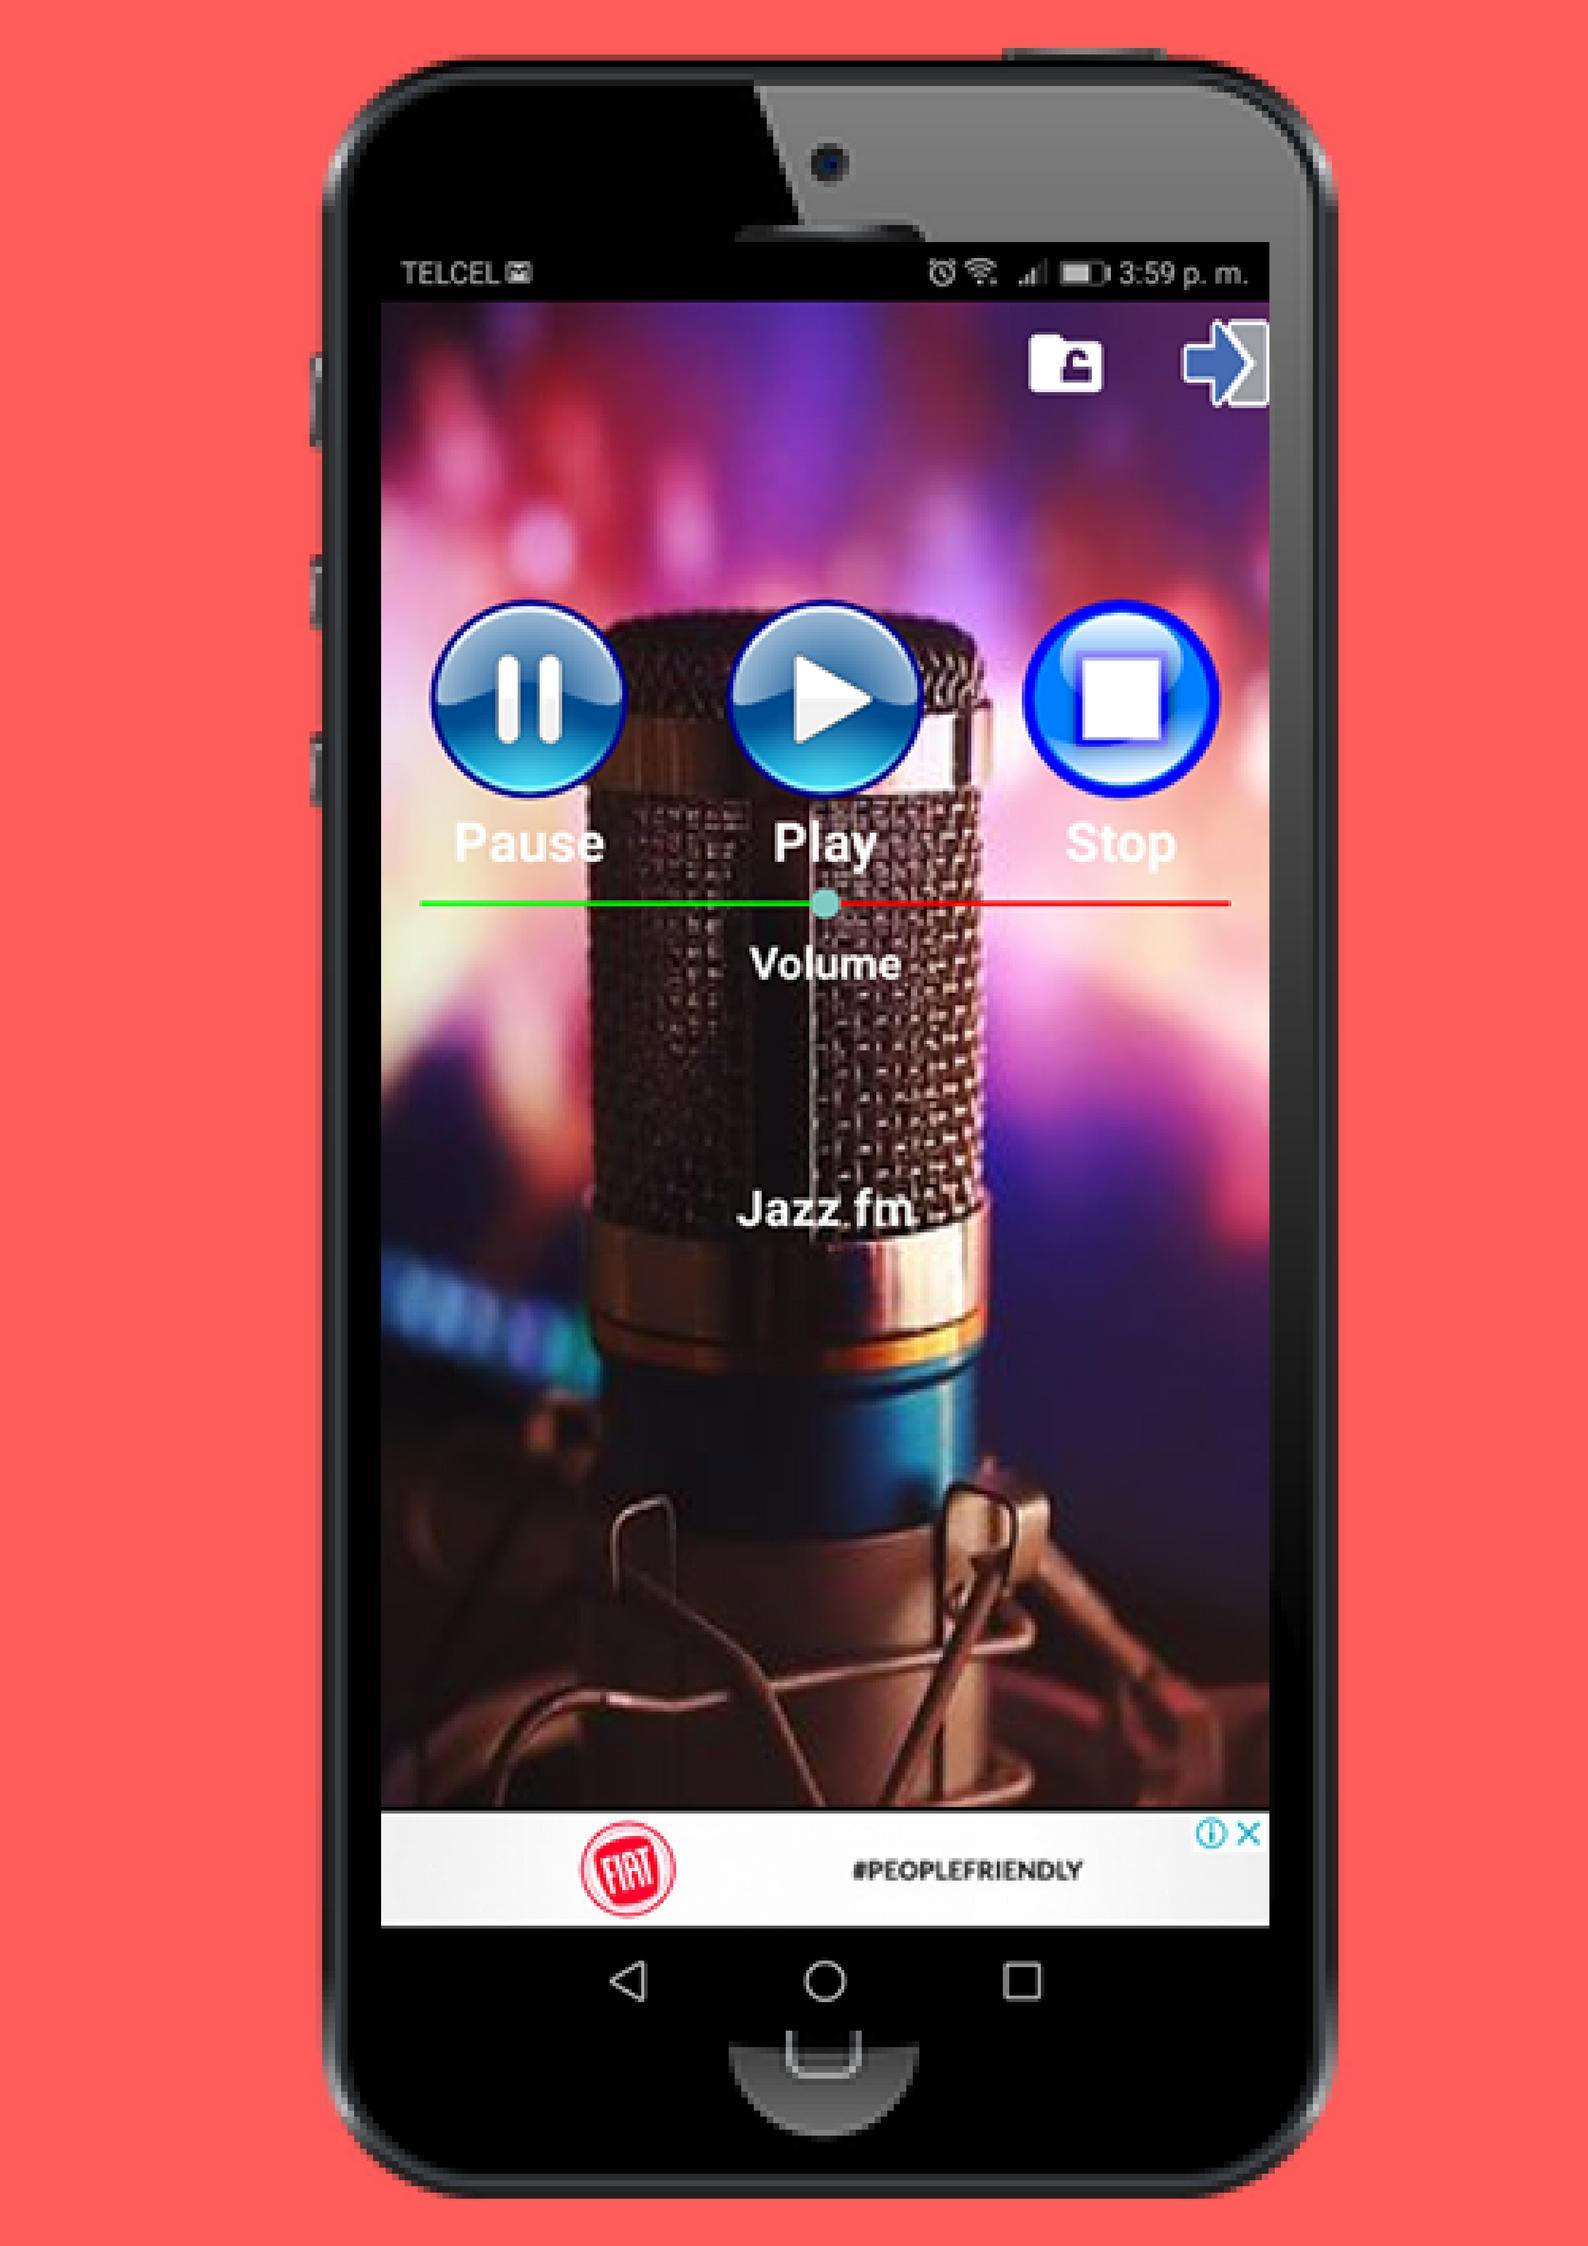 Jazz free internet app for Android - APK Download